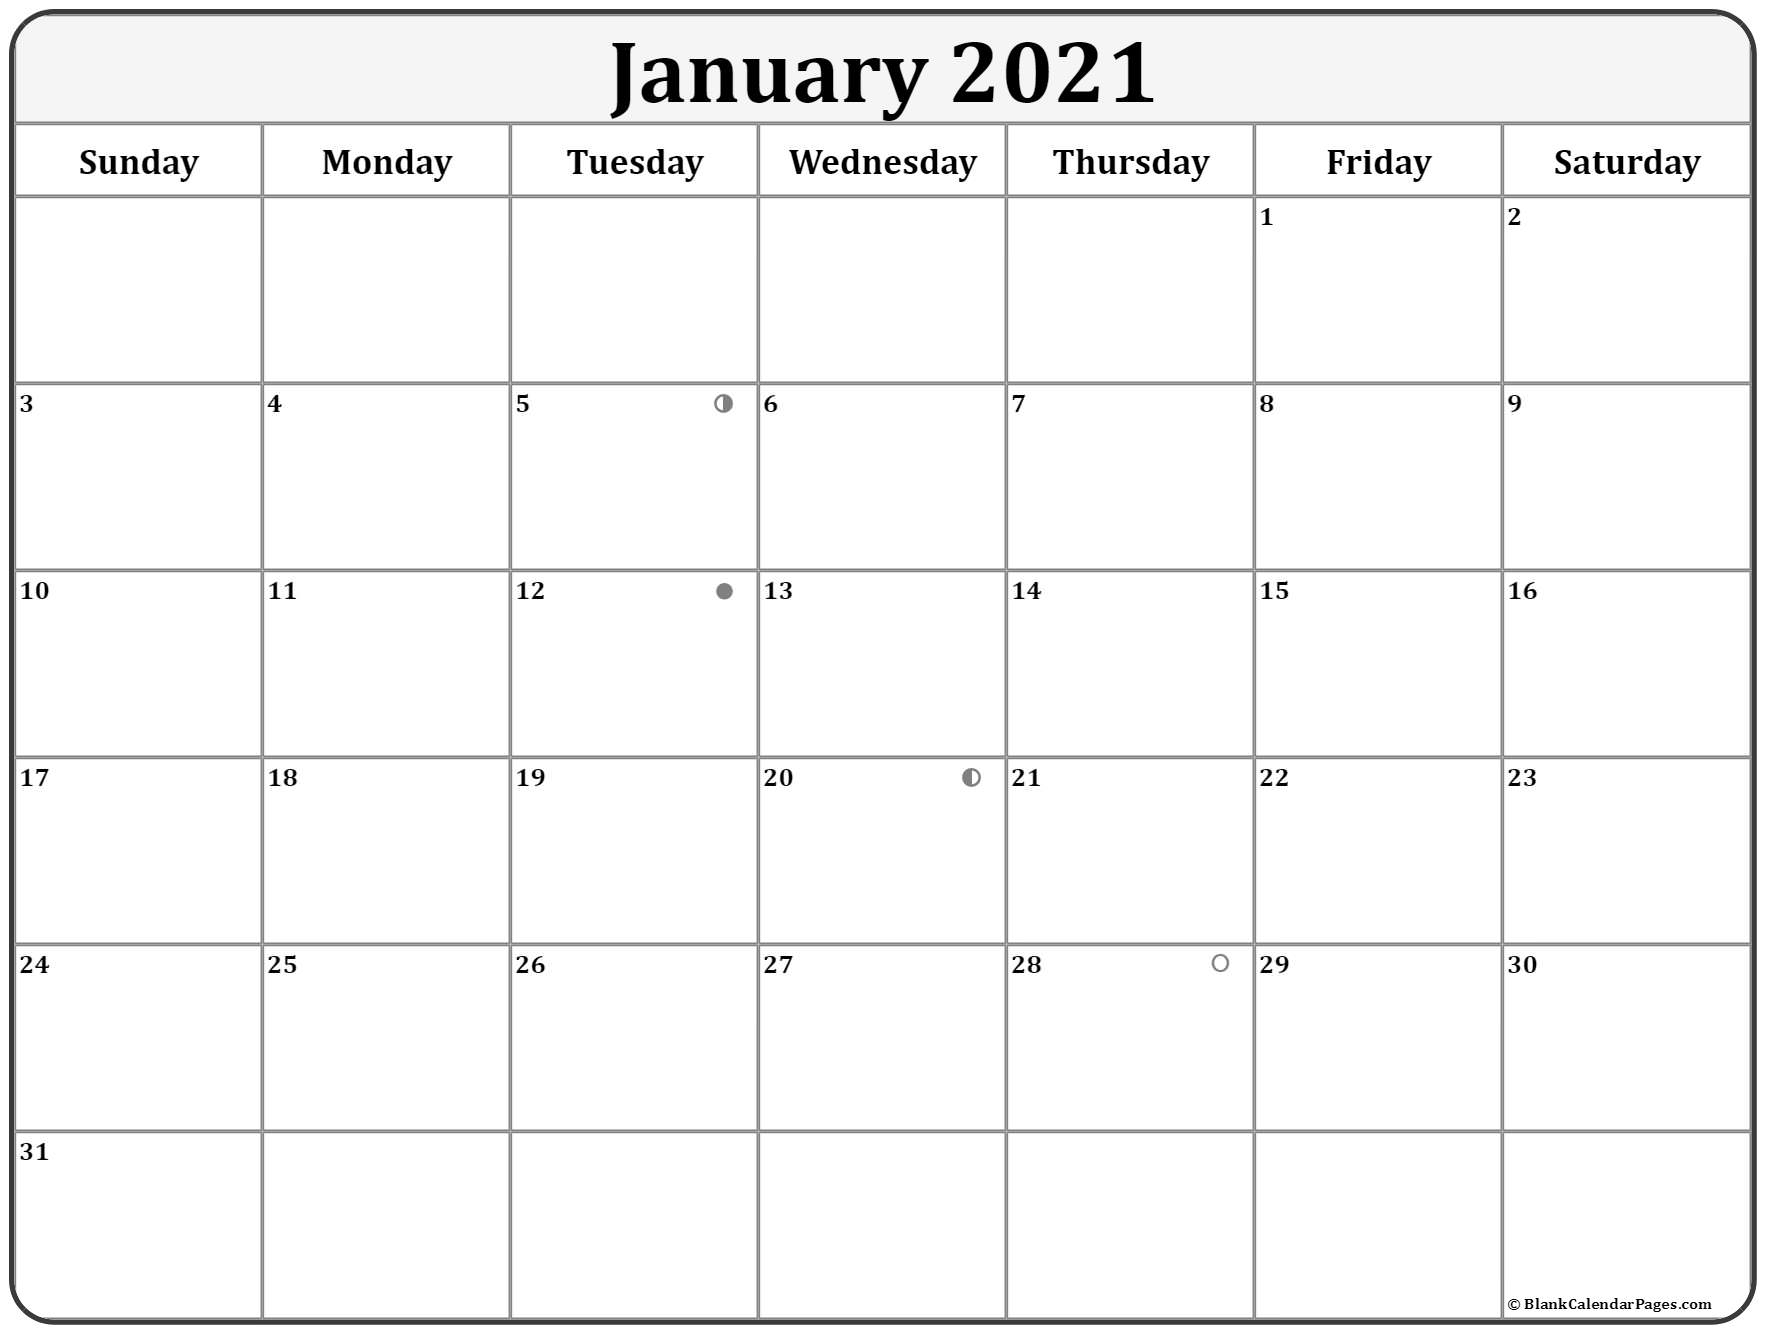 January 2021 Lunar Calendar | Moon Phase Calendar With Moon Calendar 2021 Name And Date For Kids